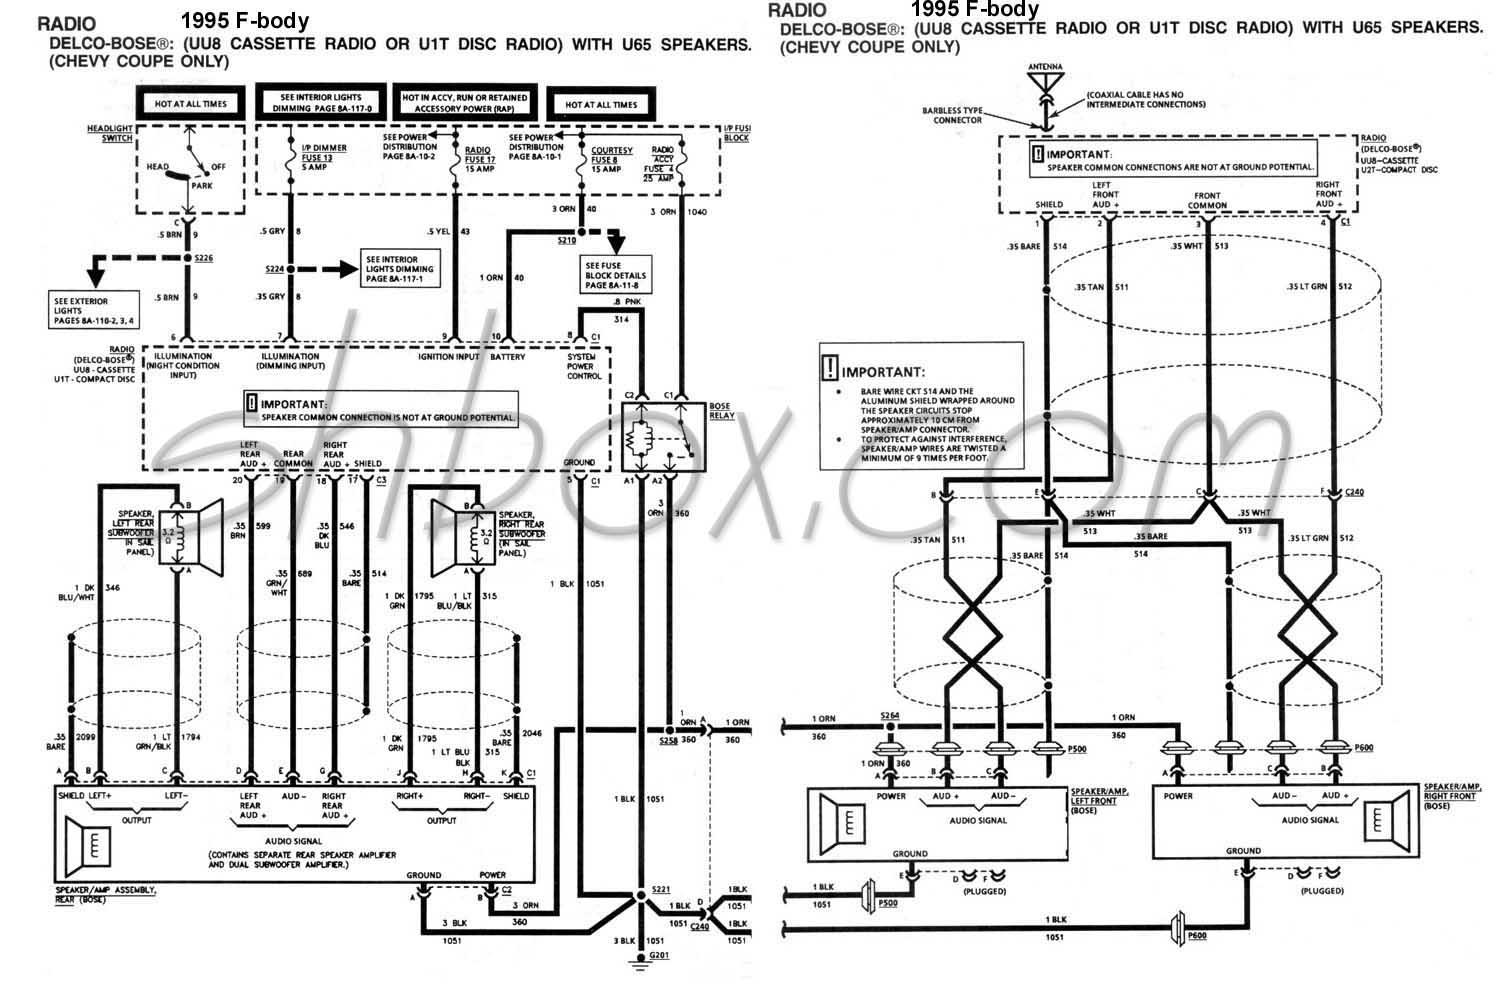 mercury switch furnace wiring diagram furnace plumbing